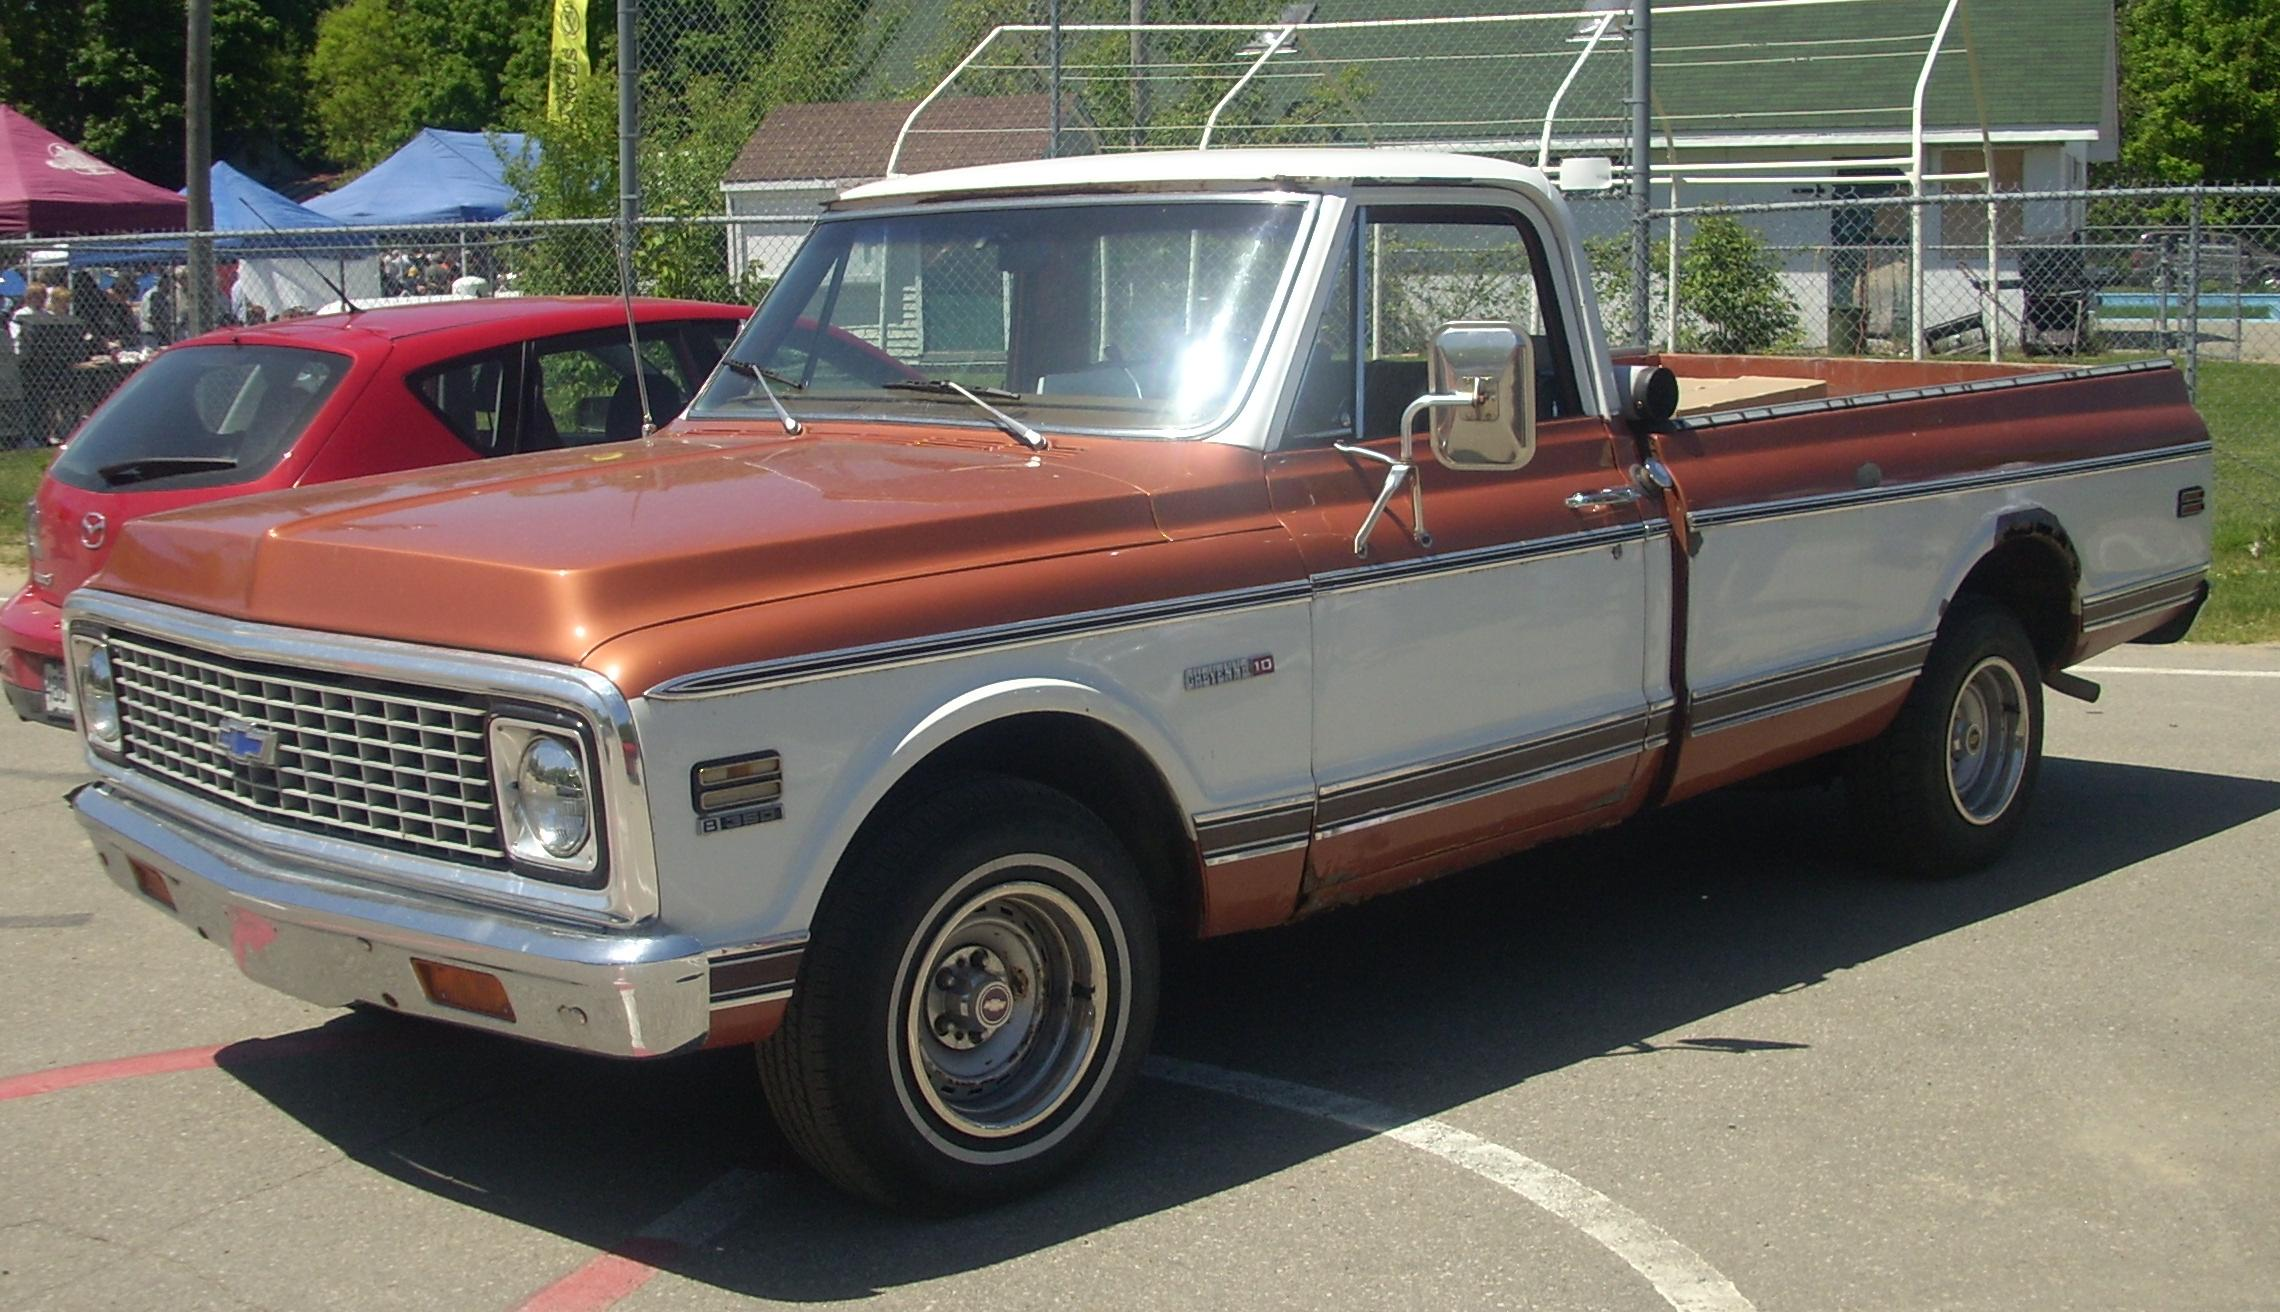 1975 Chevrolet C20 K20 Information And Photos Momentcar 1986 Chevy K30 Military Truck Wiring Diagram 3